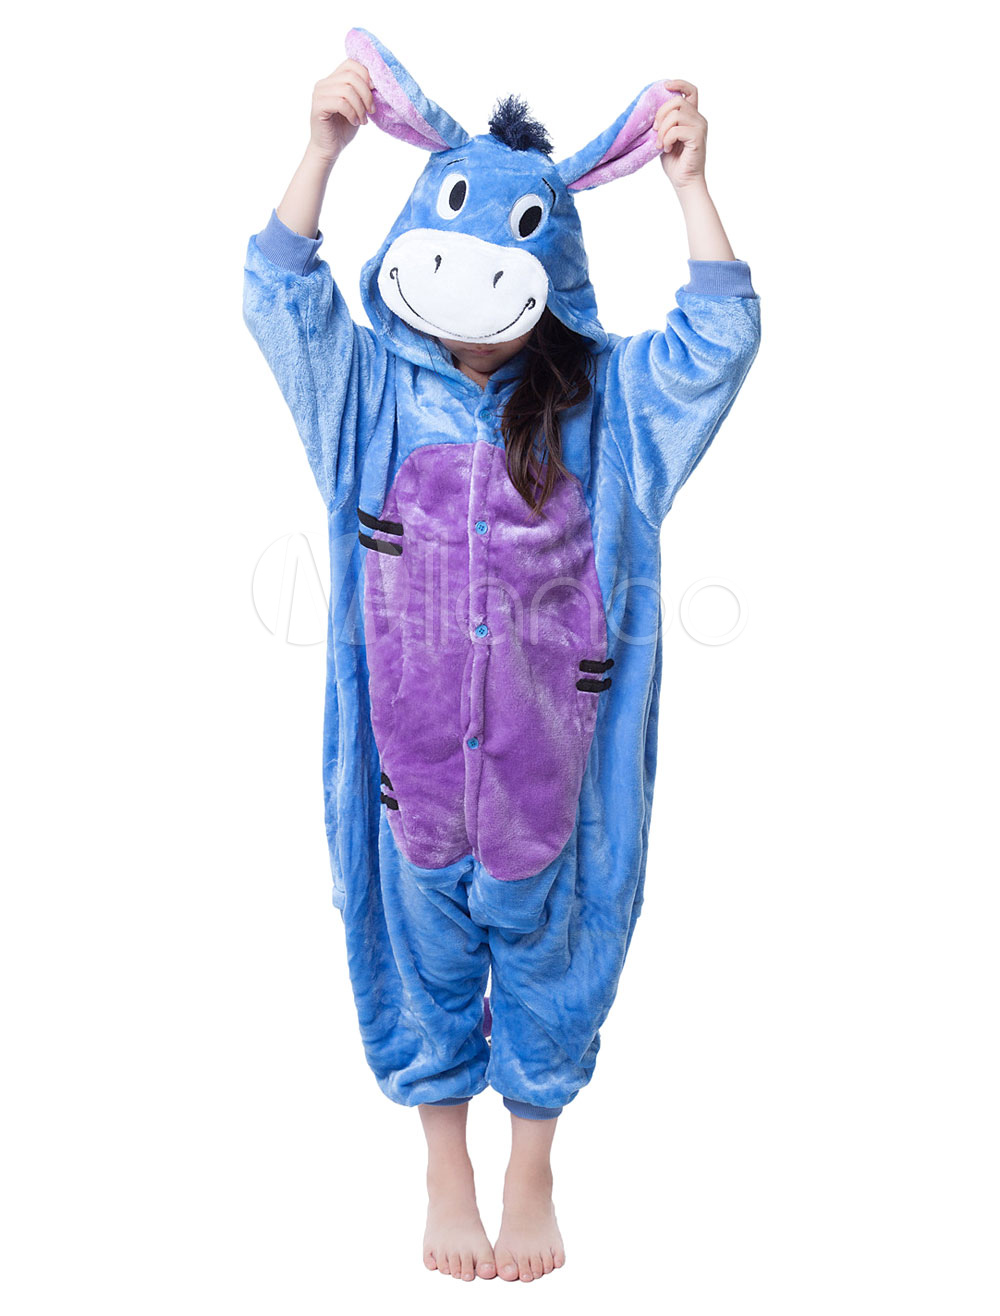 Buy Kigurumi Pajama Donkey Onesie For Kids Multicolor Synthetic Animal Jumpsuit Mascot Costume Halloween for $18.89 in Milanoo store